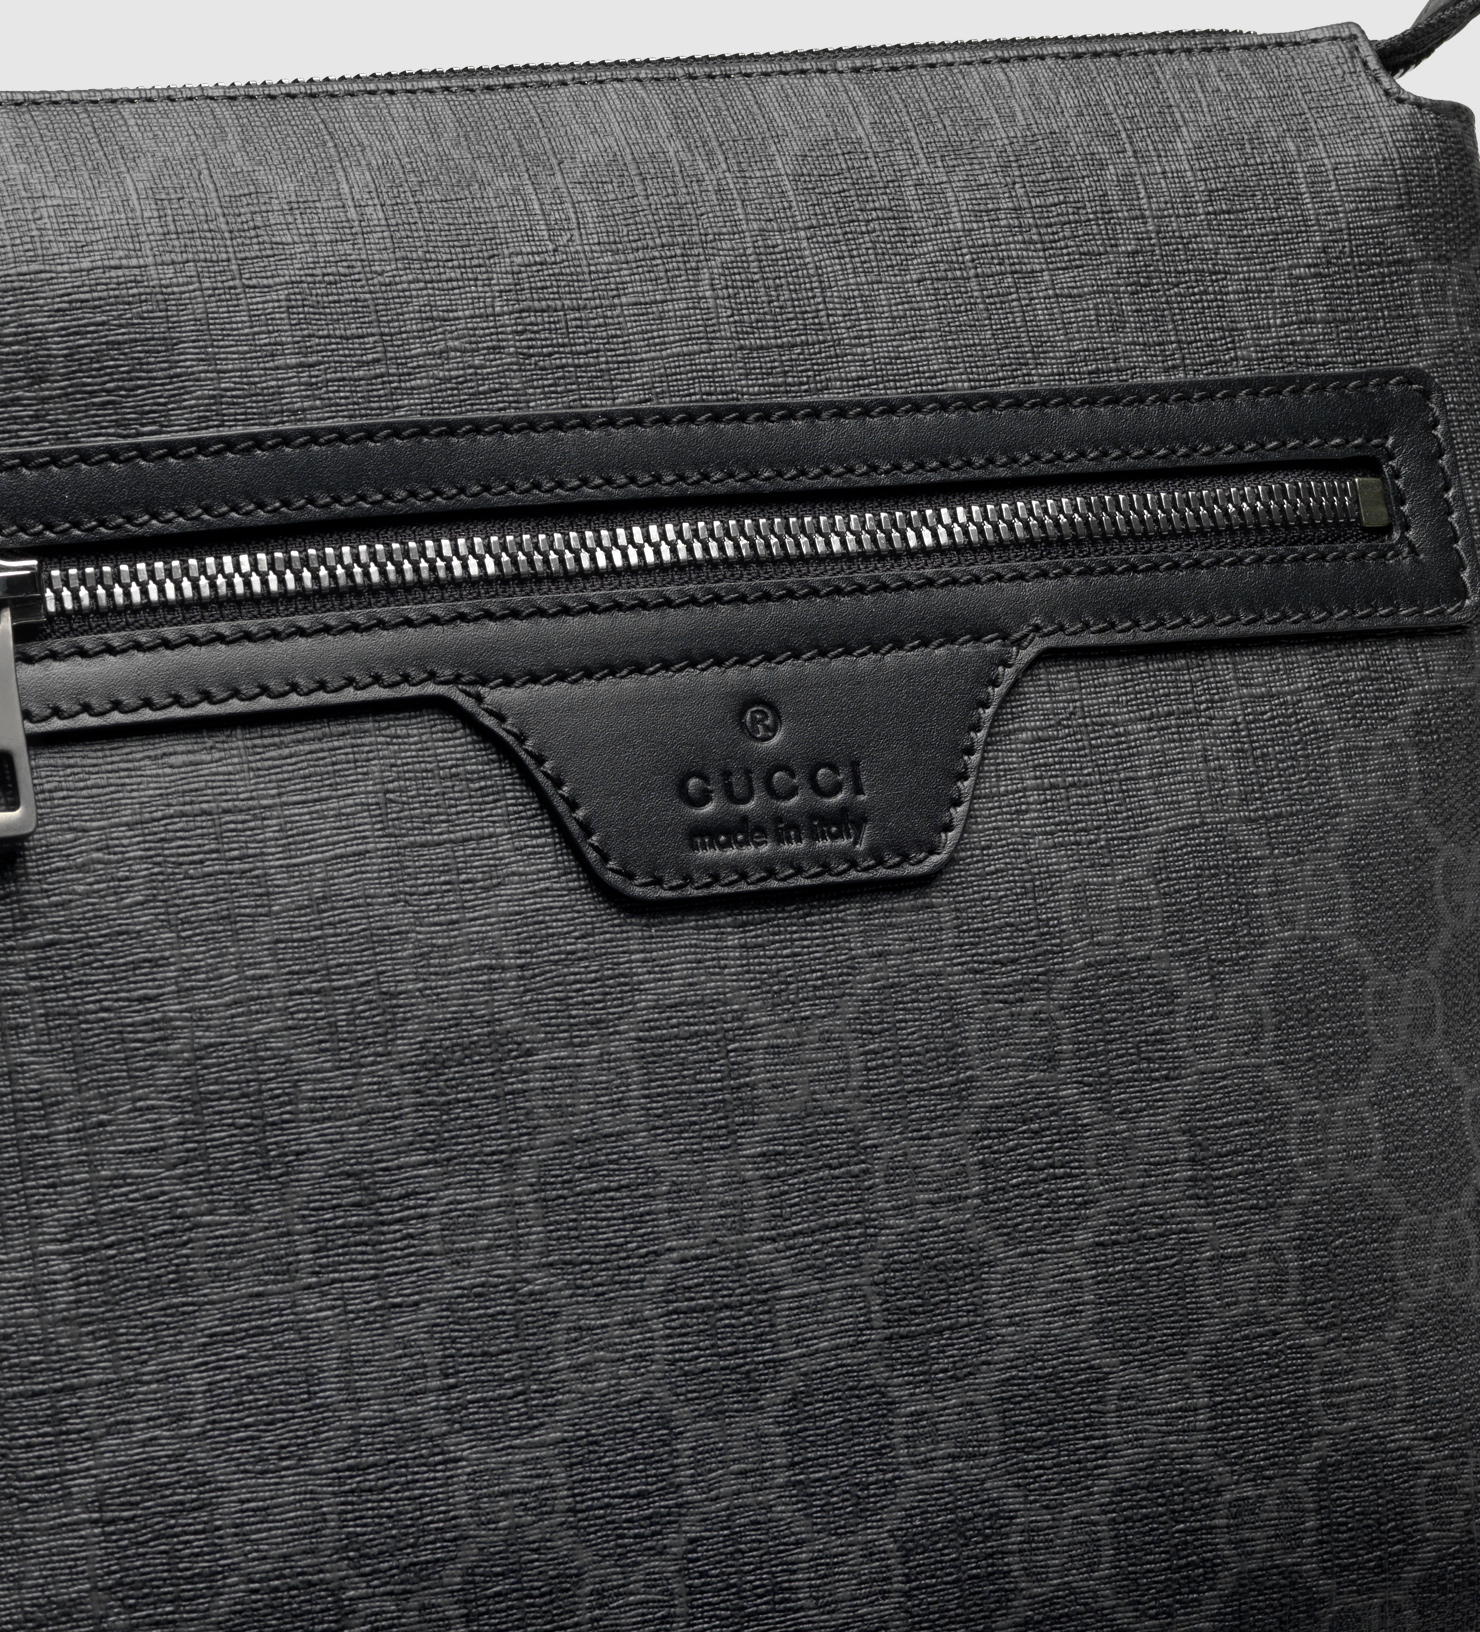 77980739bd8 Gucci Gg Supreme Canvas Small Messenger Bag in Black for Men - Lyst